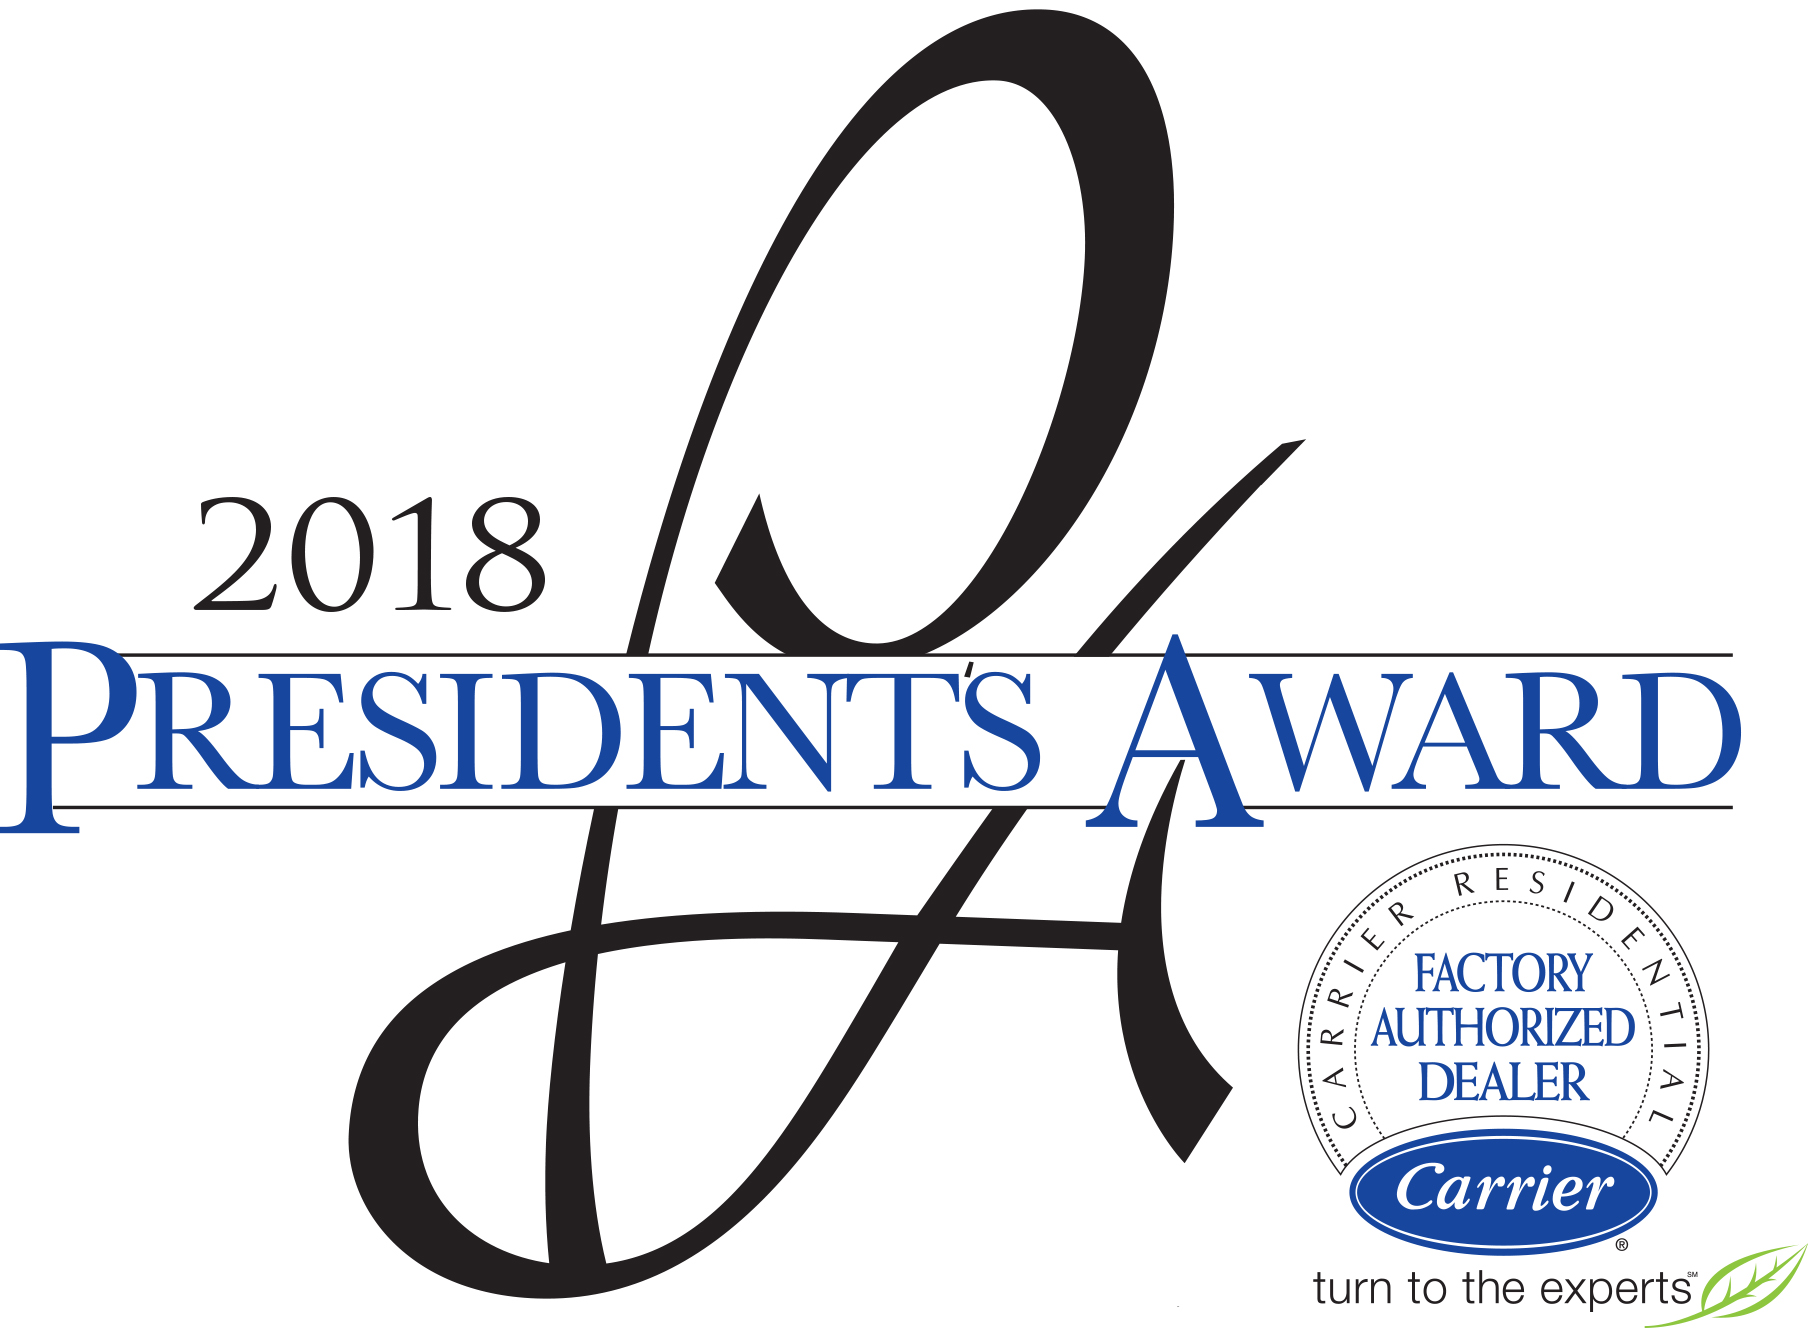 Carrier President's Award 2018 logo